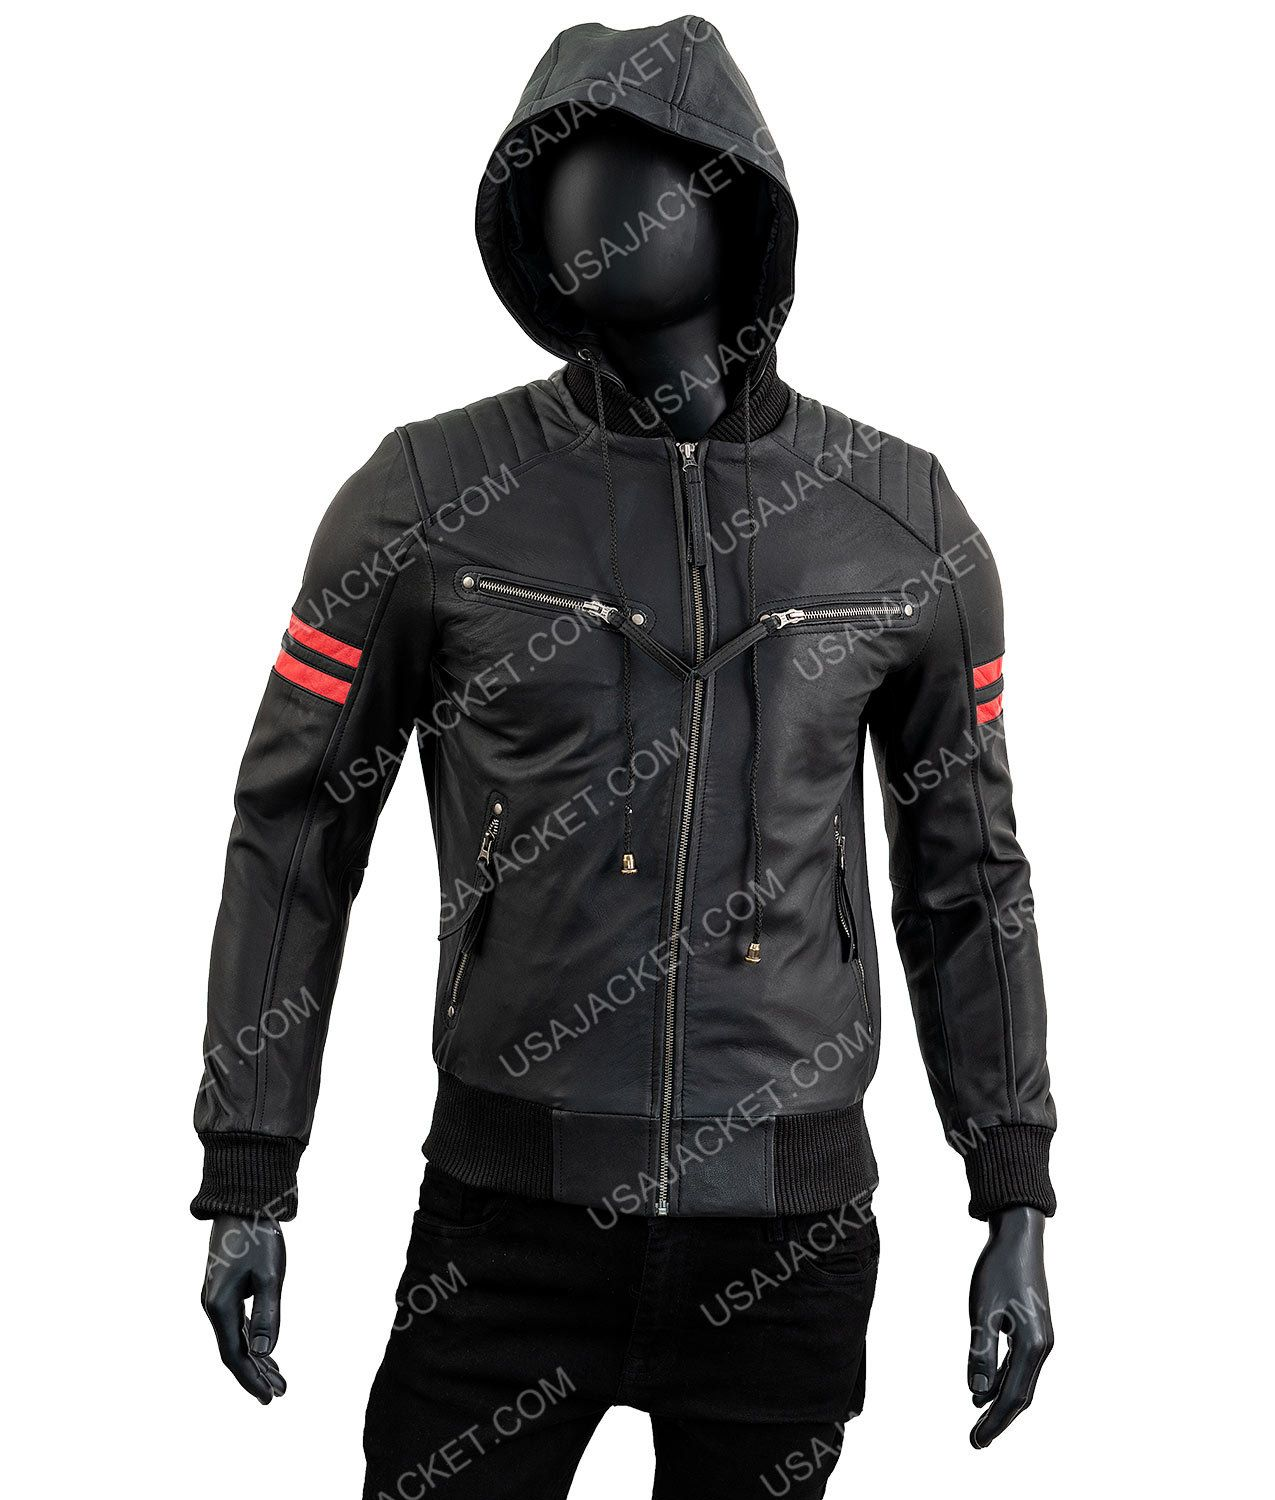 Shepherd Bomber Red Striped Biker Retro Faux Leather Jacket With Hood Coats Jackets Leather Hoodie Hoodie Jacket Men Leather Jacket With Hood [ 1500 x 1275 Pixel ]